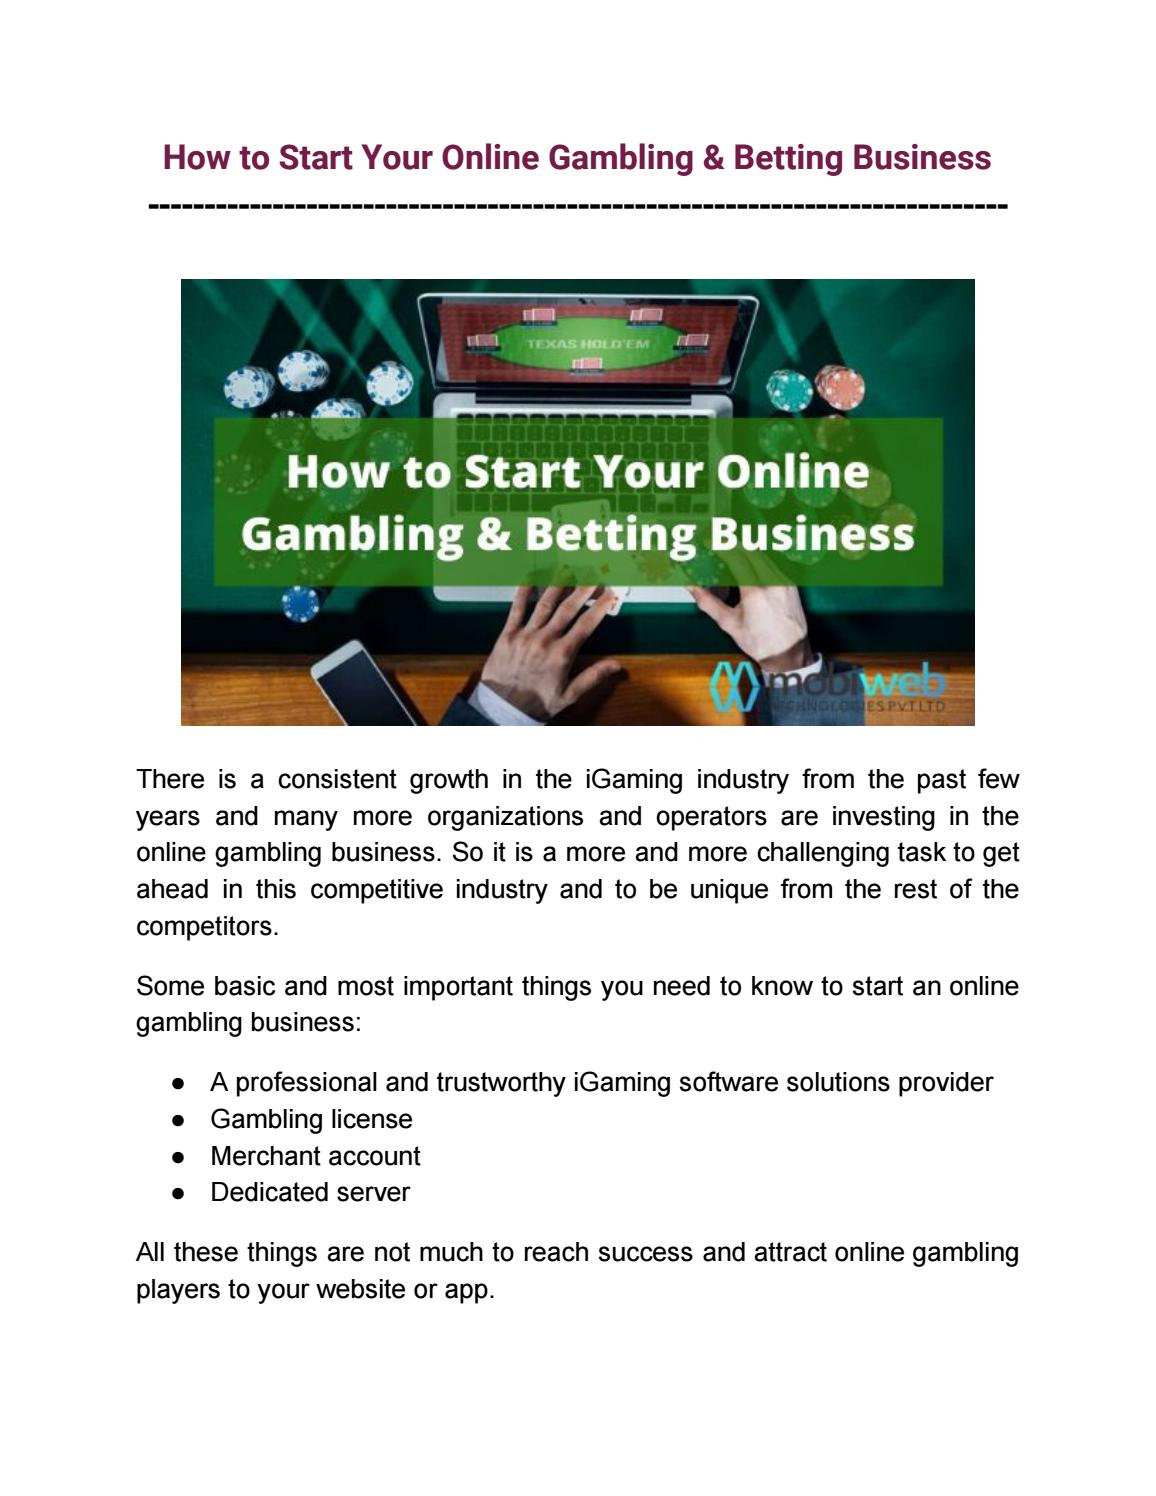 Most Helpful Tips to Start Your Online Gambling & Betting Business